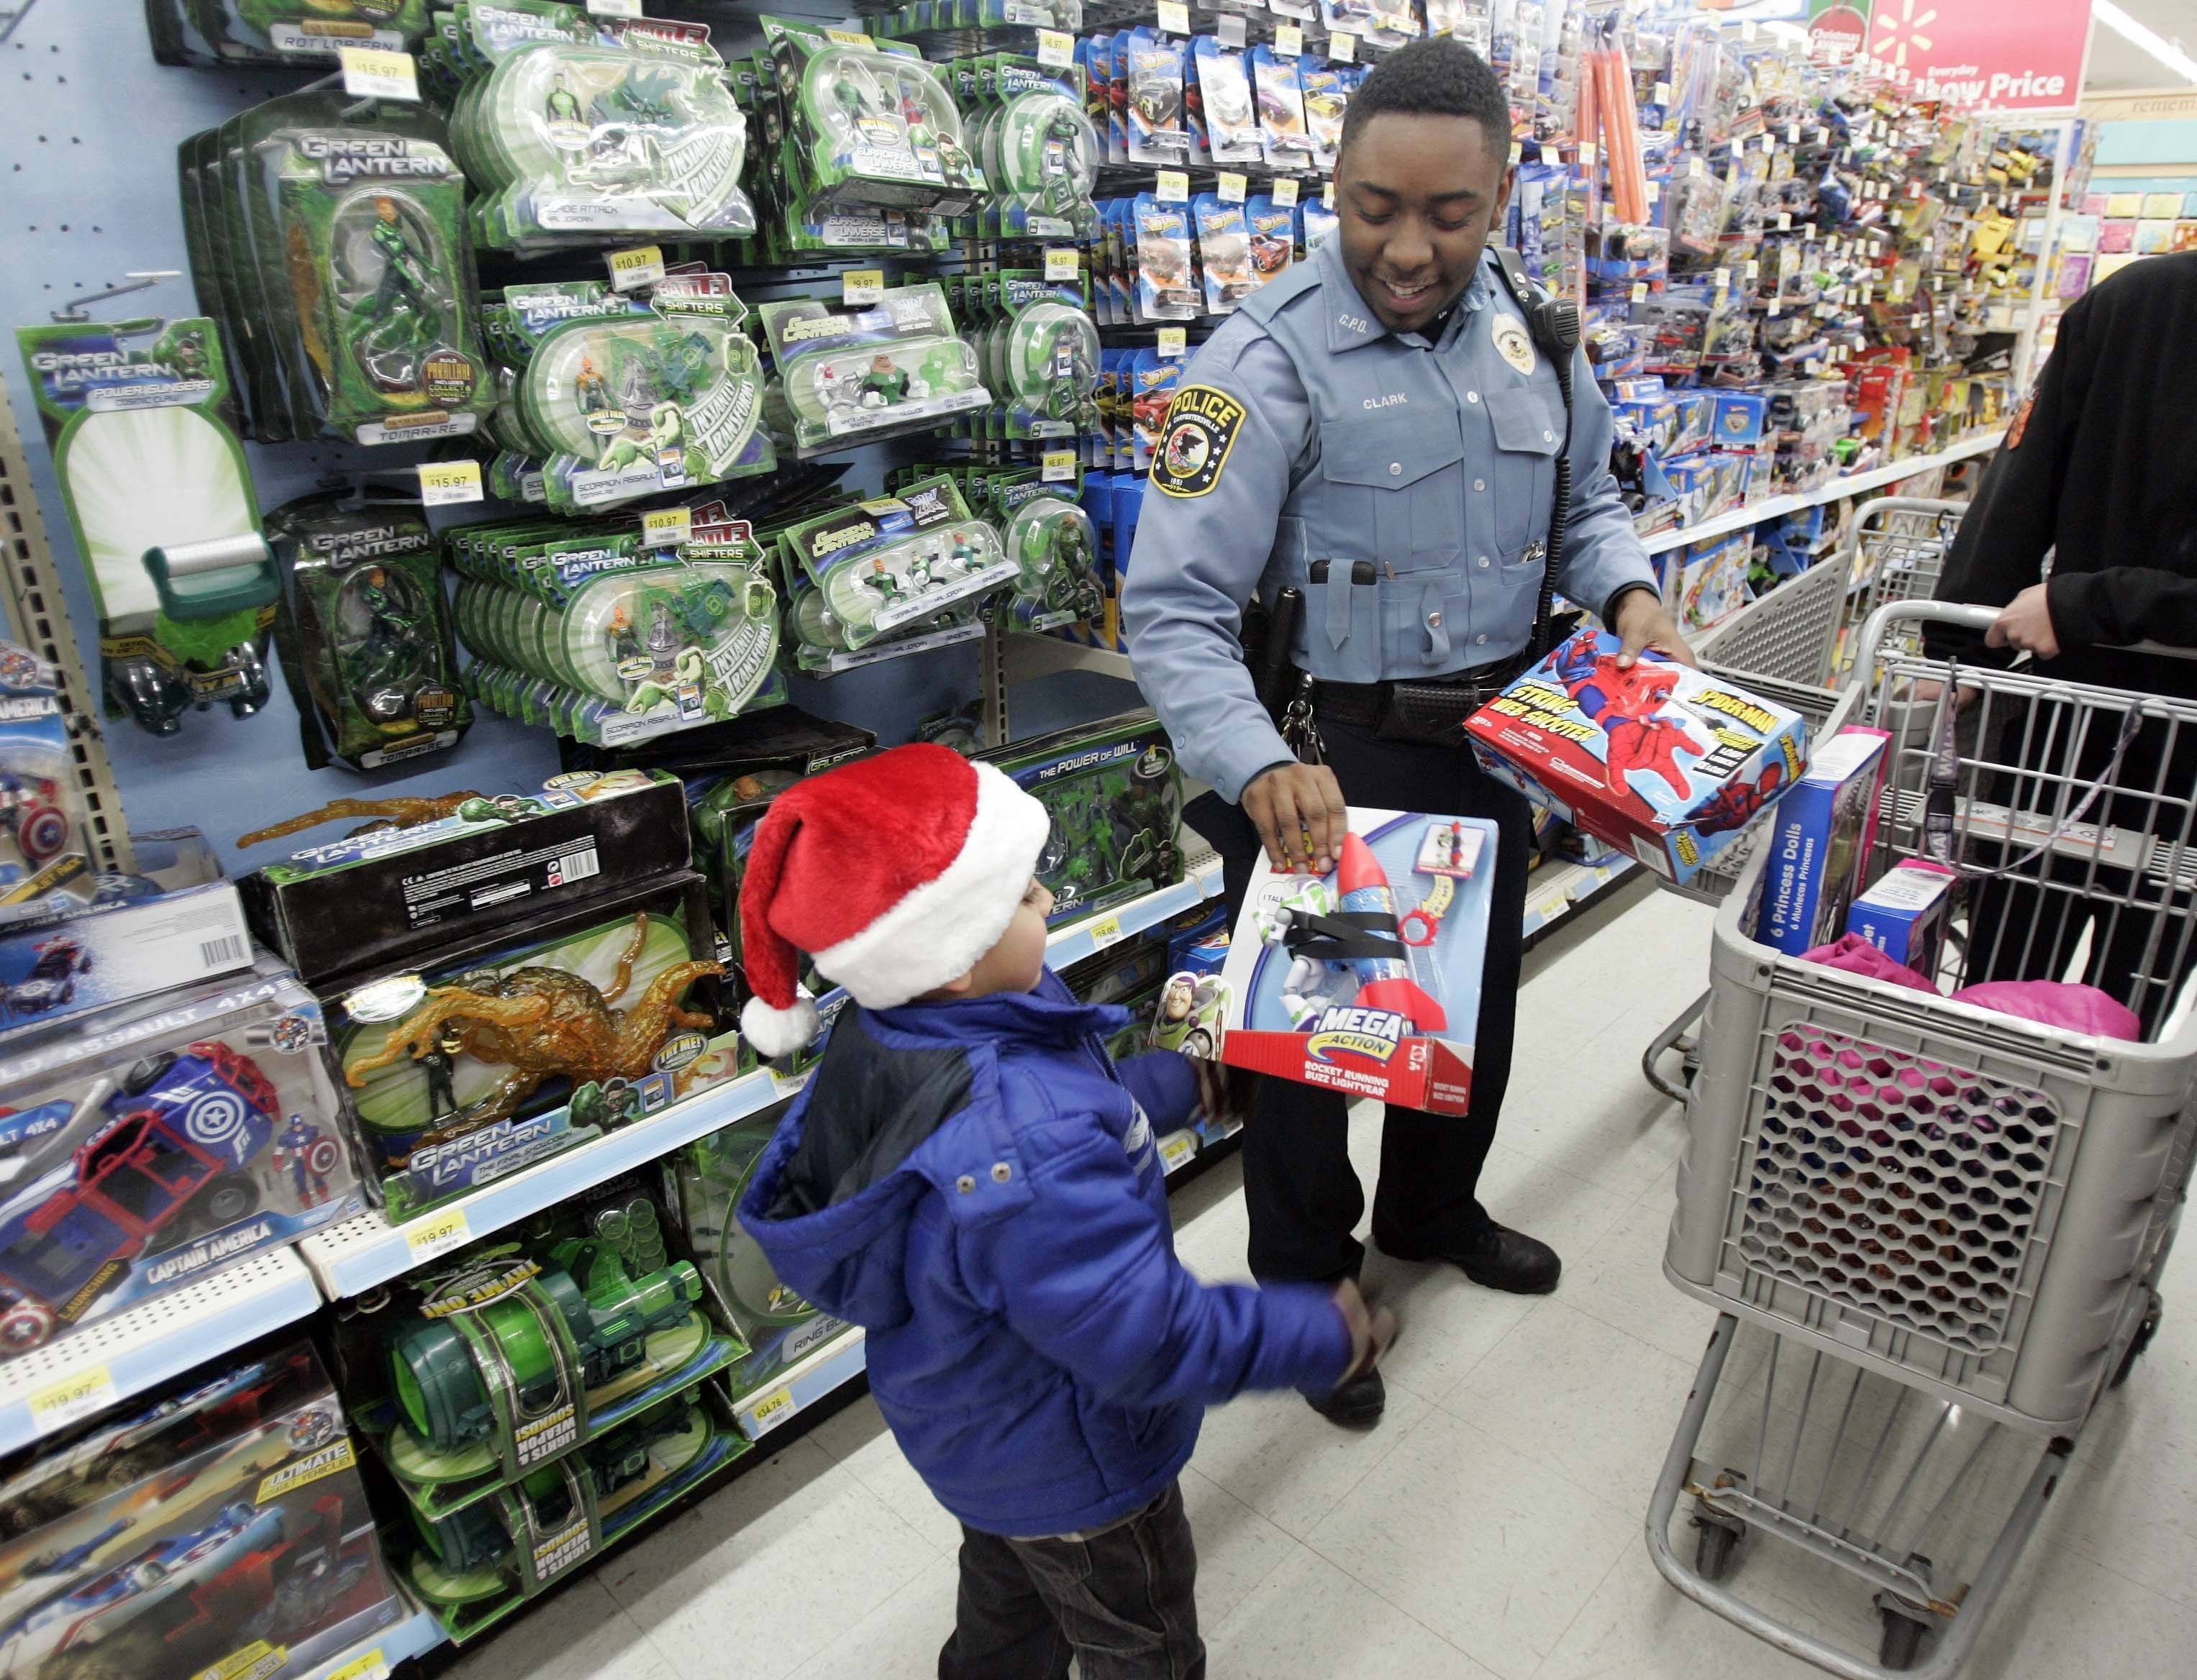 Brian Hill/bhill@dailyherald.com Tony Perez, 4, of Carpentersville, hands Carpentersville Community Service Officer Marcus Clark a gift to add to the basket during Shop with a Cop program Saturday at Wal-Mart in East Dundee.